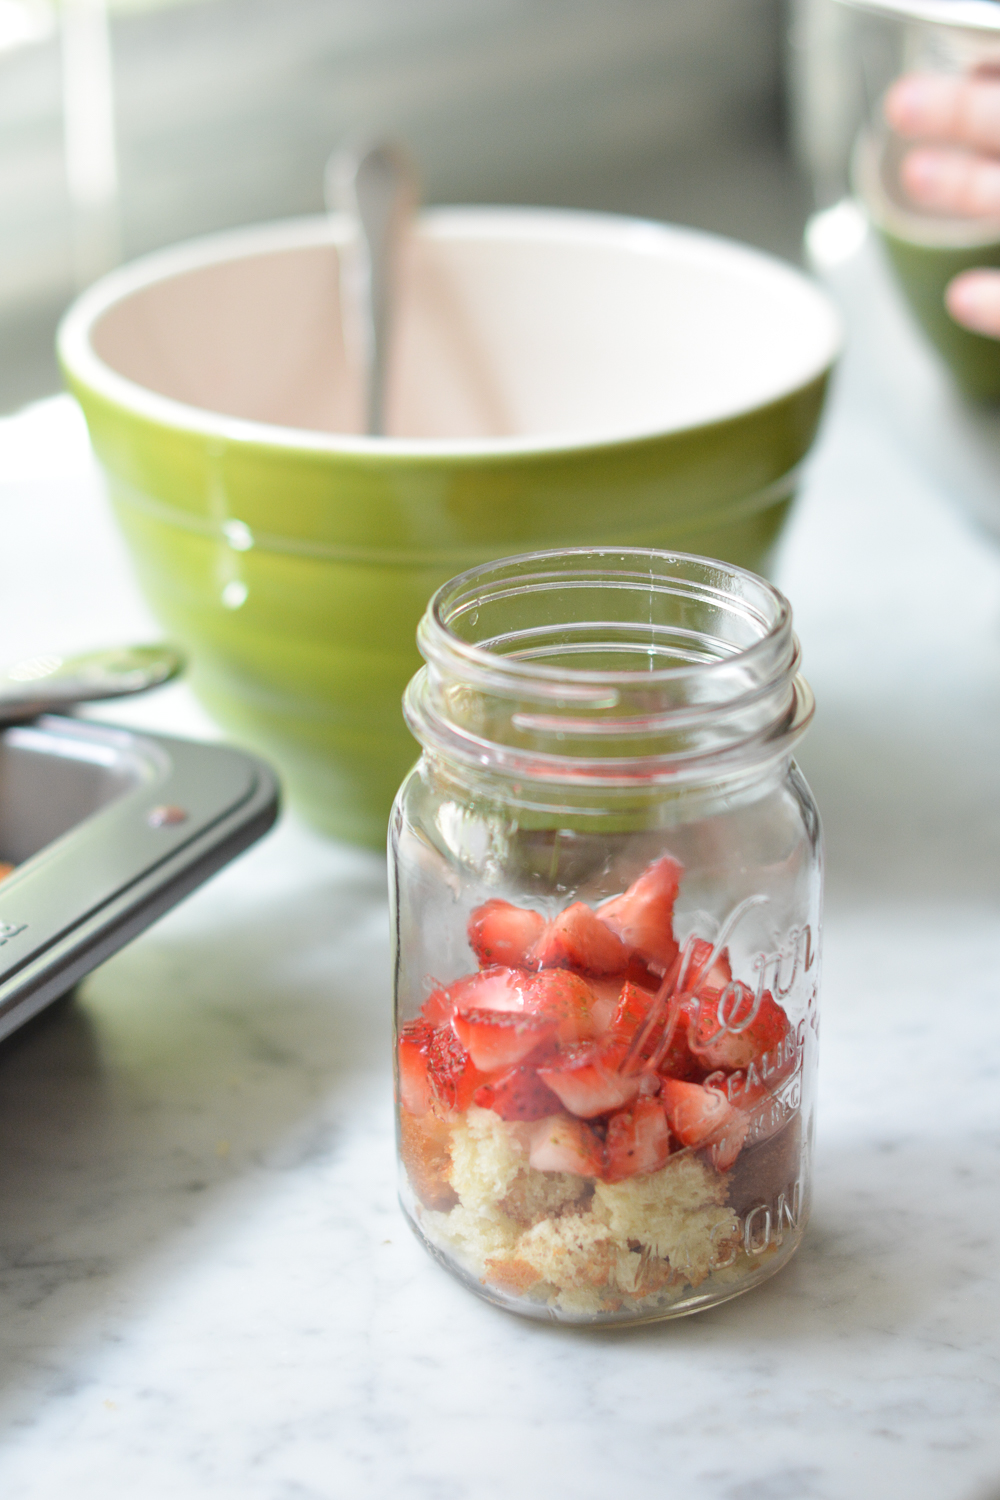 layering the strawberries and cake